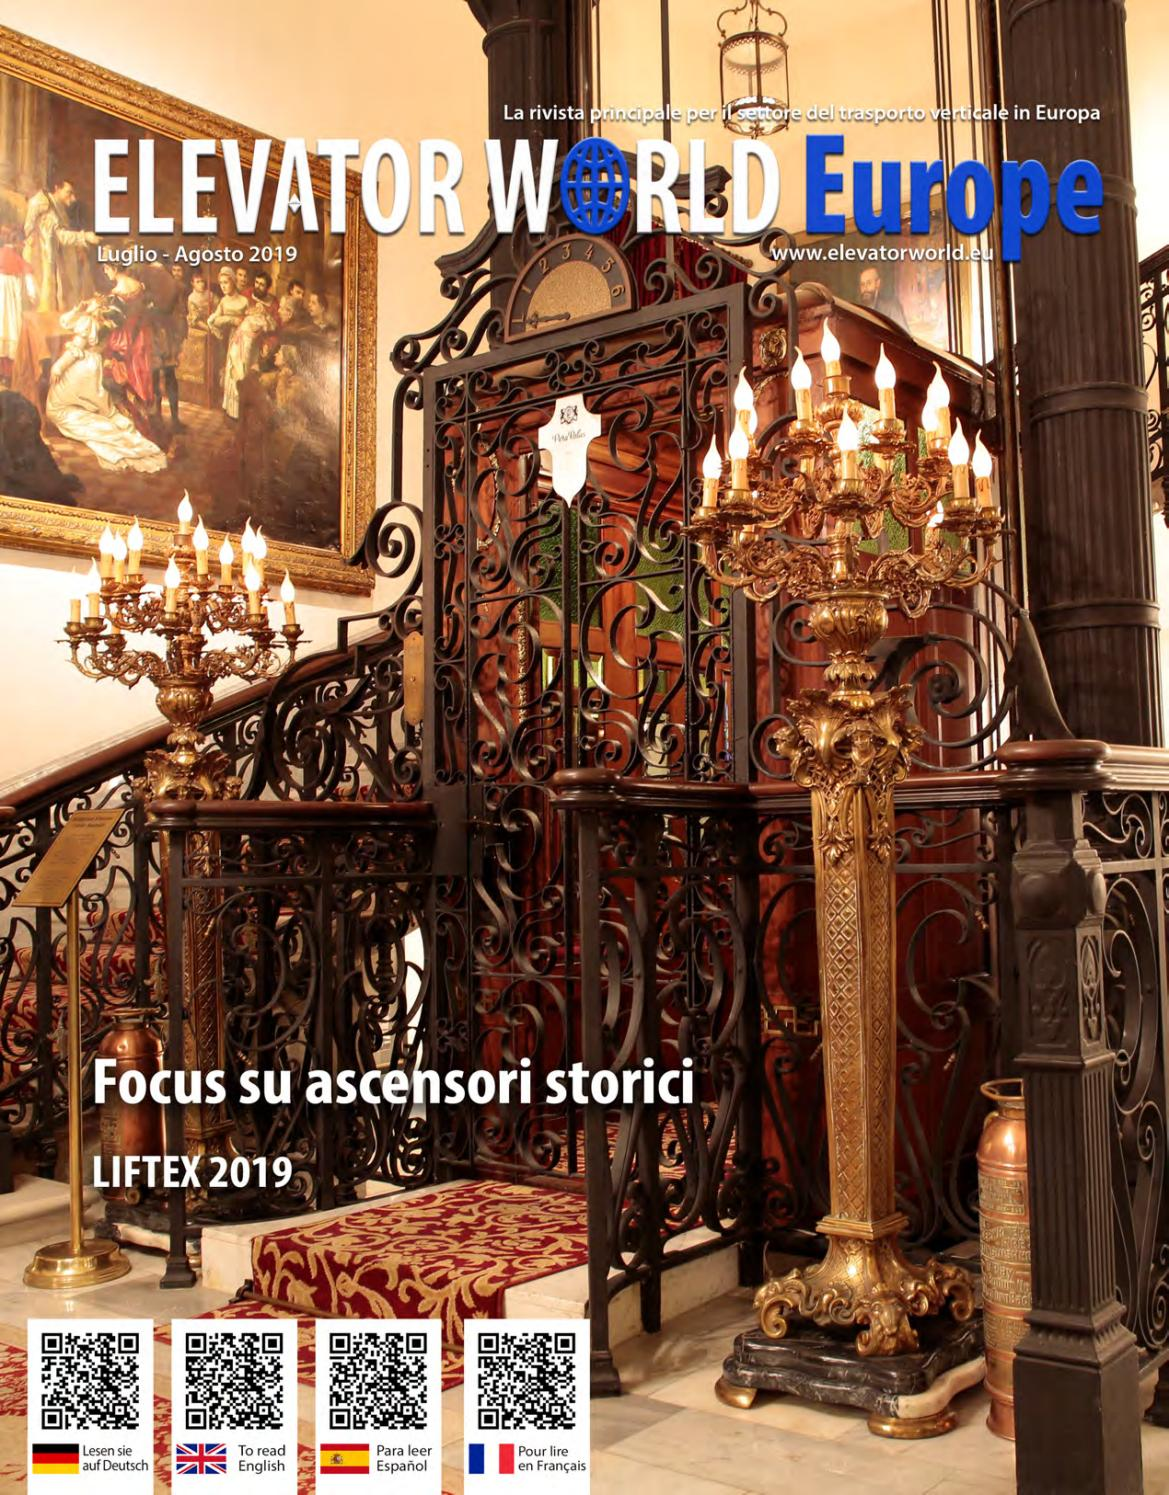 Come Costruire Un Mini Ascensore elevator world europe italiano | luglio - agosto 2019 by